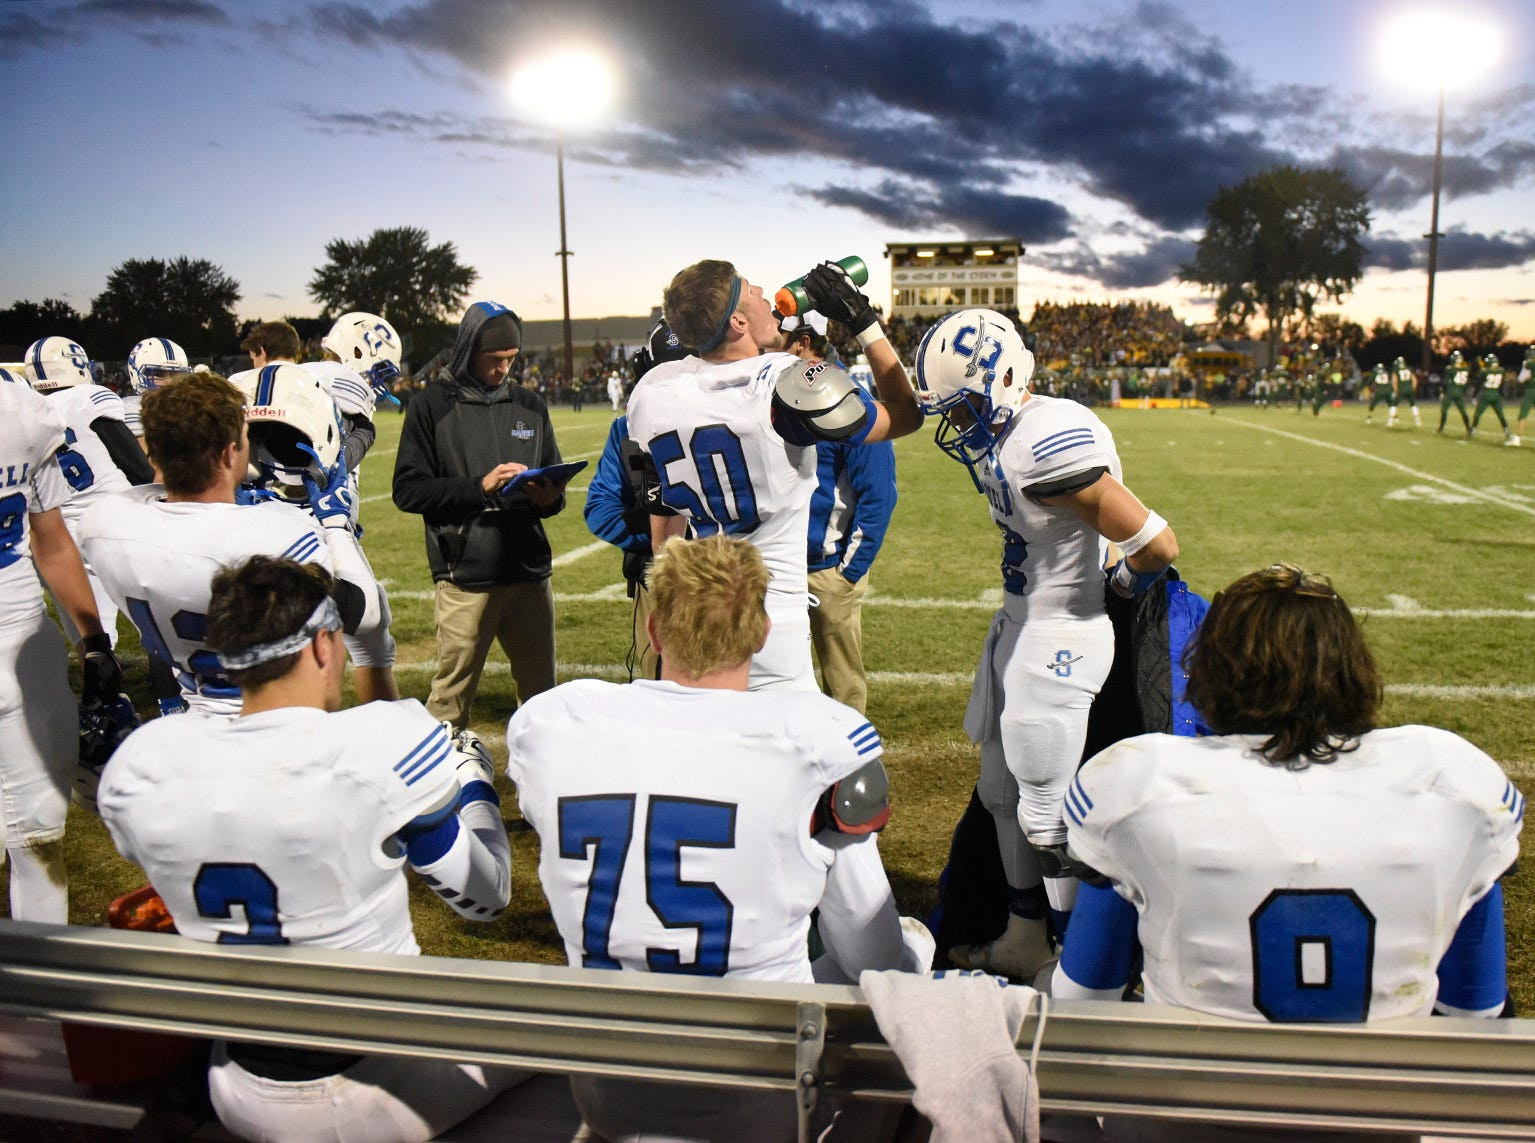 Sartell players on the sidelines during the first half Friday, Sept. 28, in Sauk Rapids.